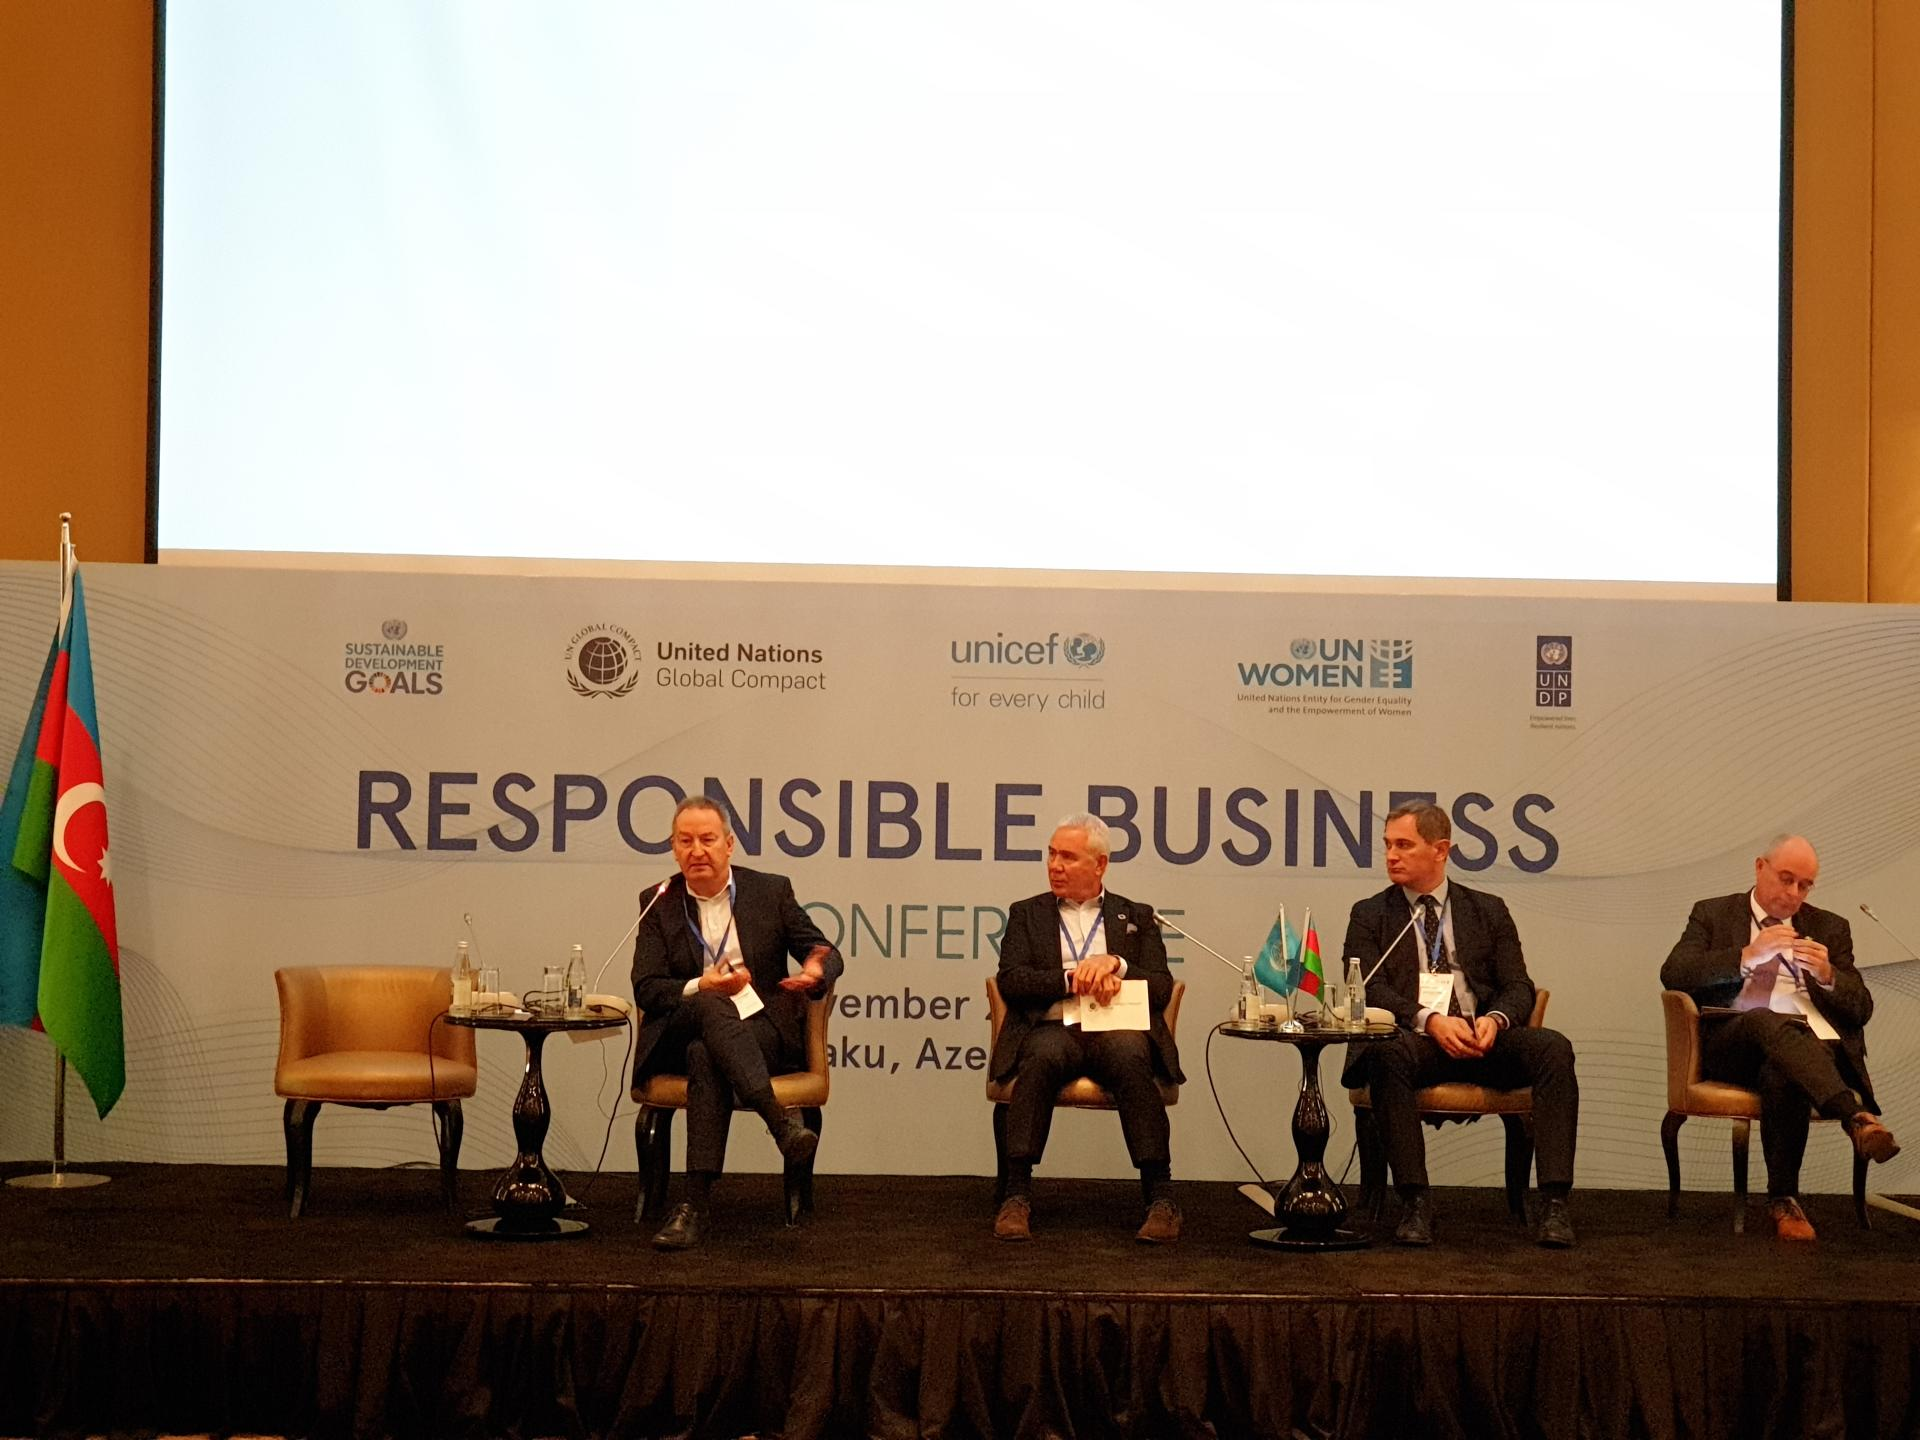 Business leaders in Azerbaijan discuss embedding UN Global Compact principles & SDGs into their operations, strategies (PHOTO)